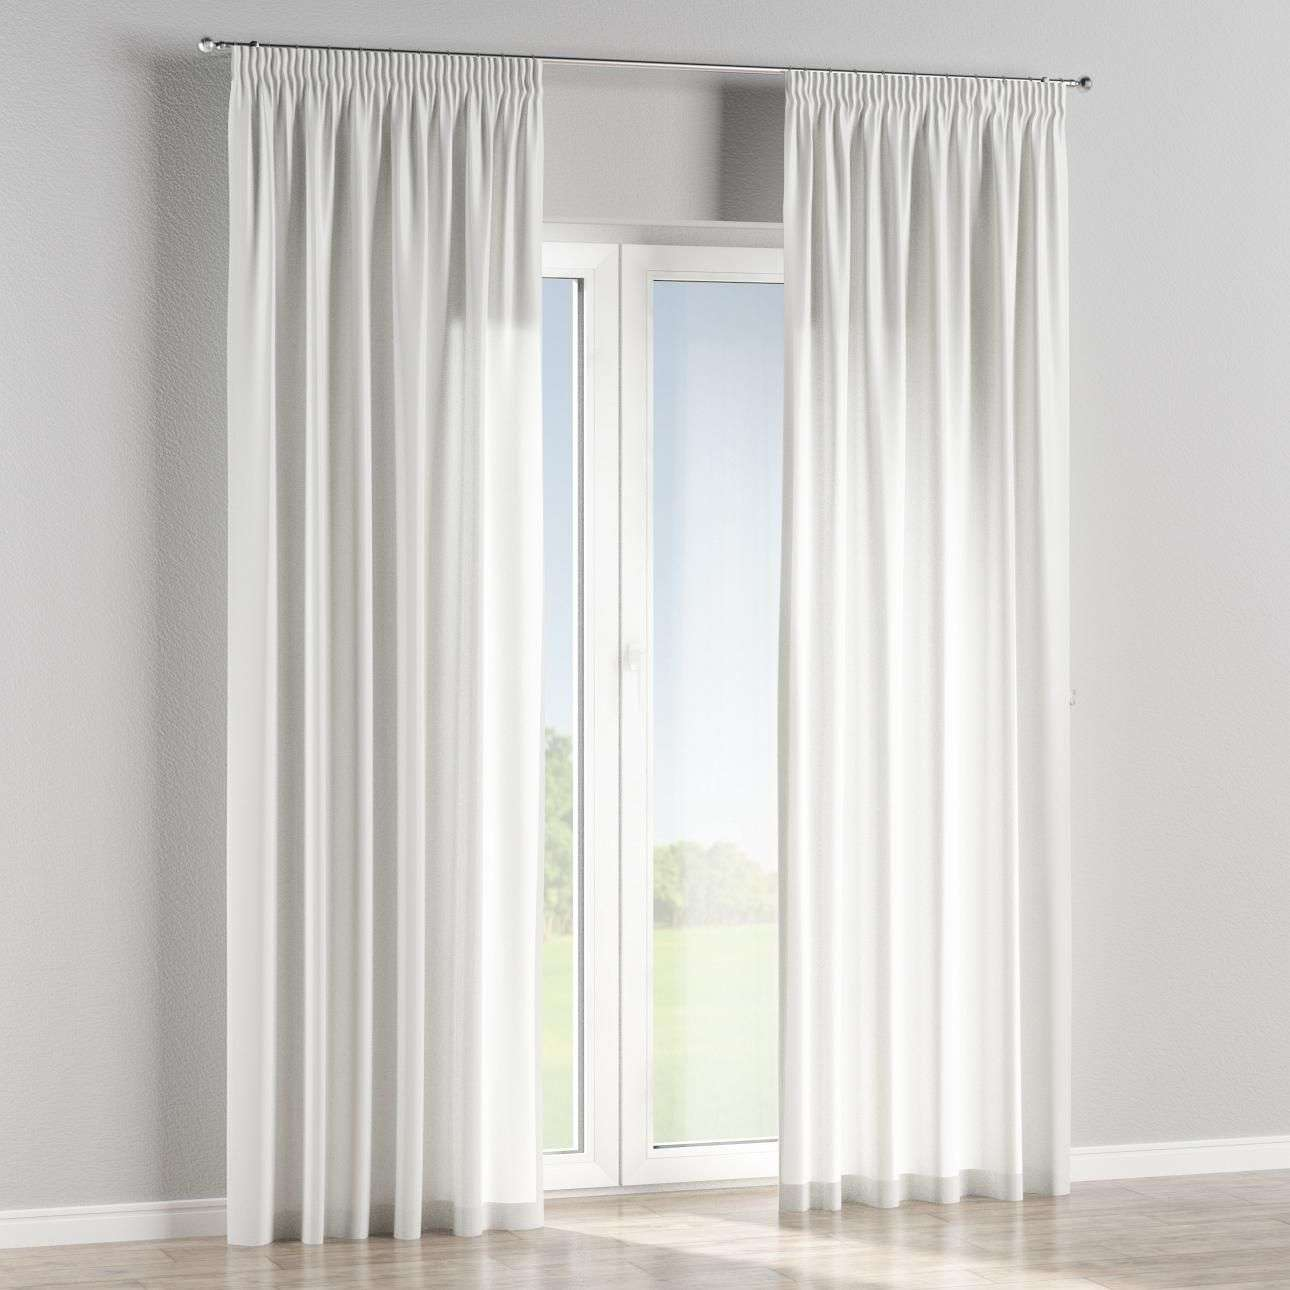 Pencil pleat lined curtains in collection Kids/Baby, fabric: 119-13